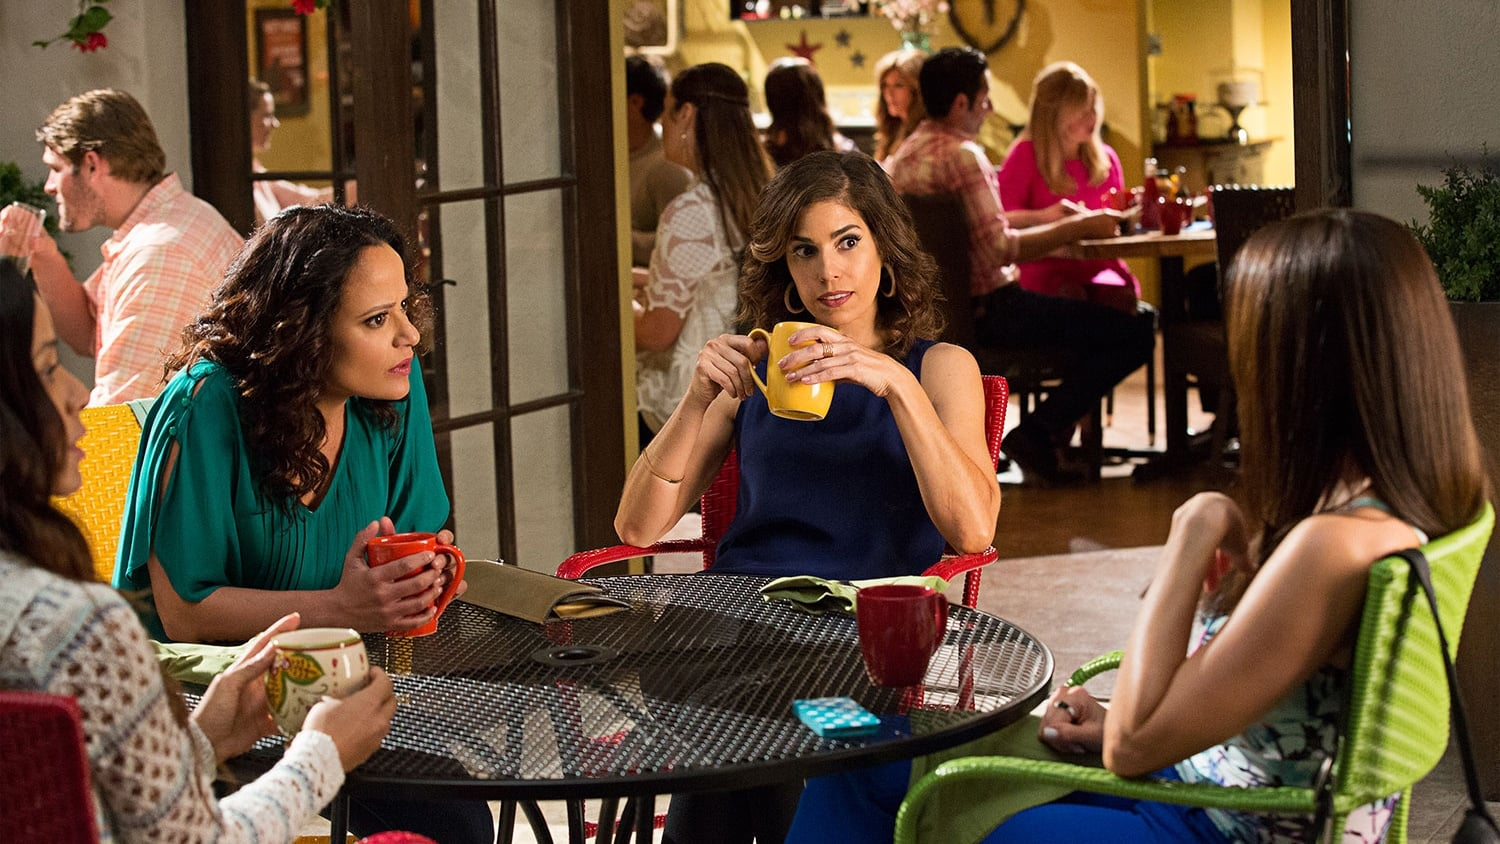 devious maids season 1 episode 2 télécharger